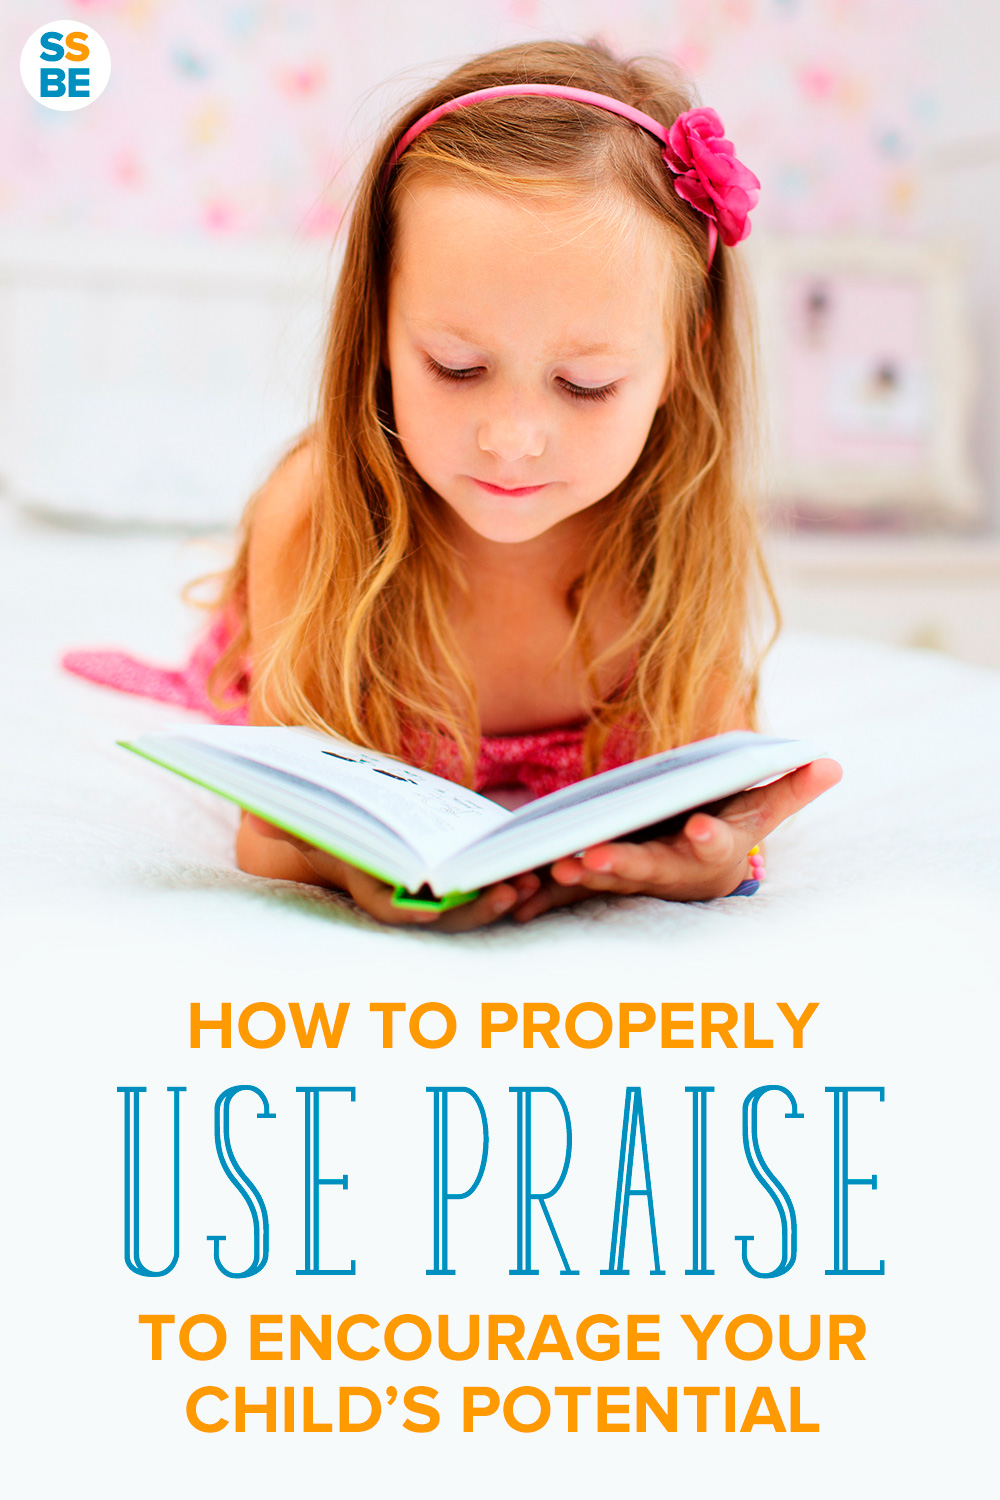 Many parents praise their kids with good intentions. But can praise be harmful? Here's how to praise kids to encourage their potential.